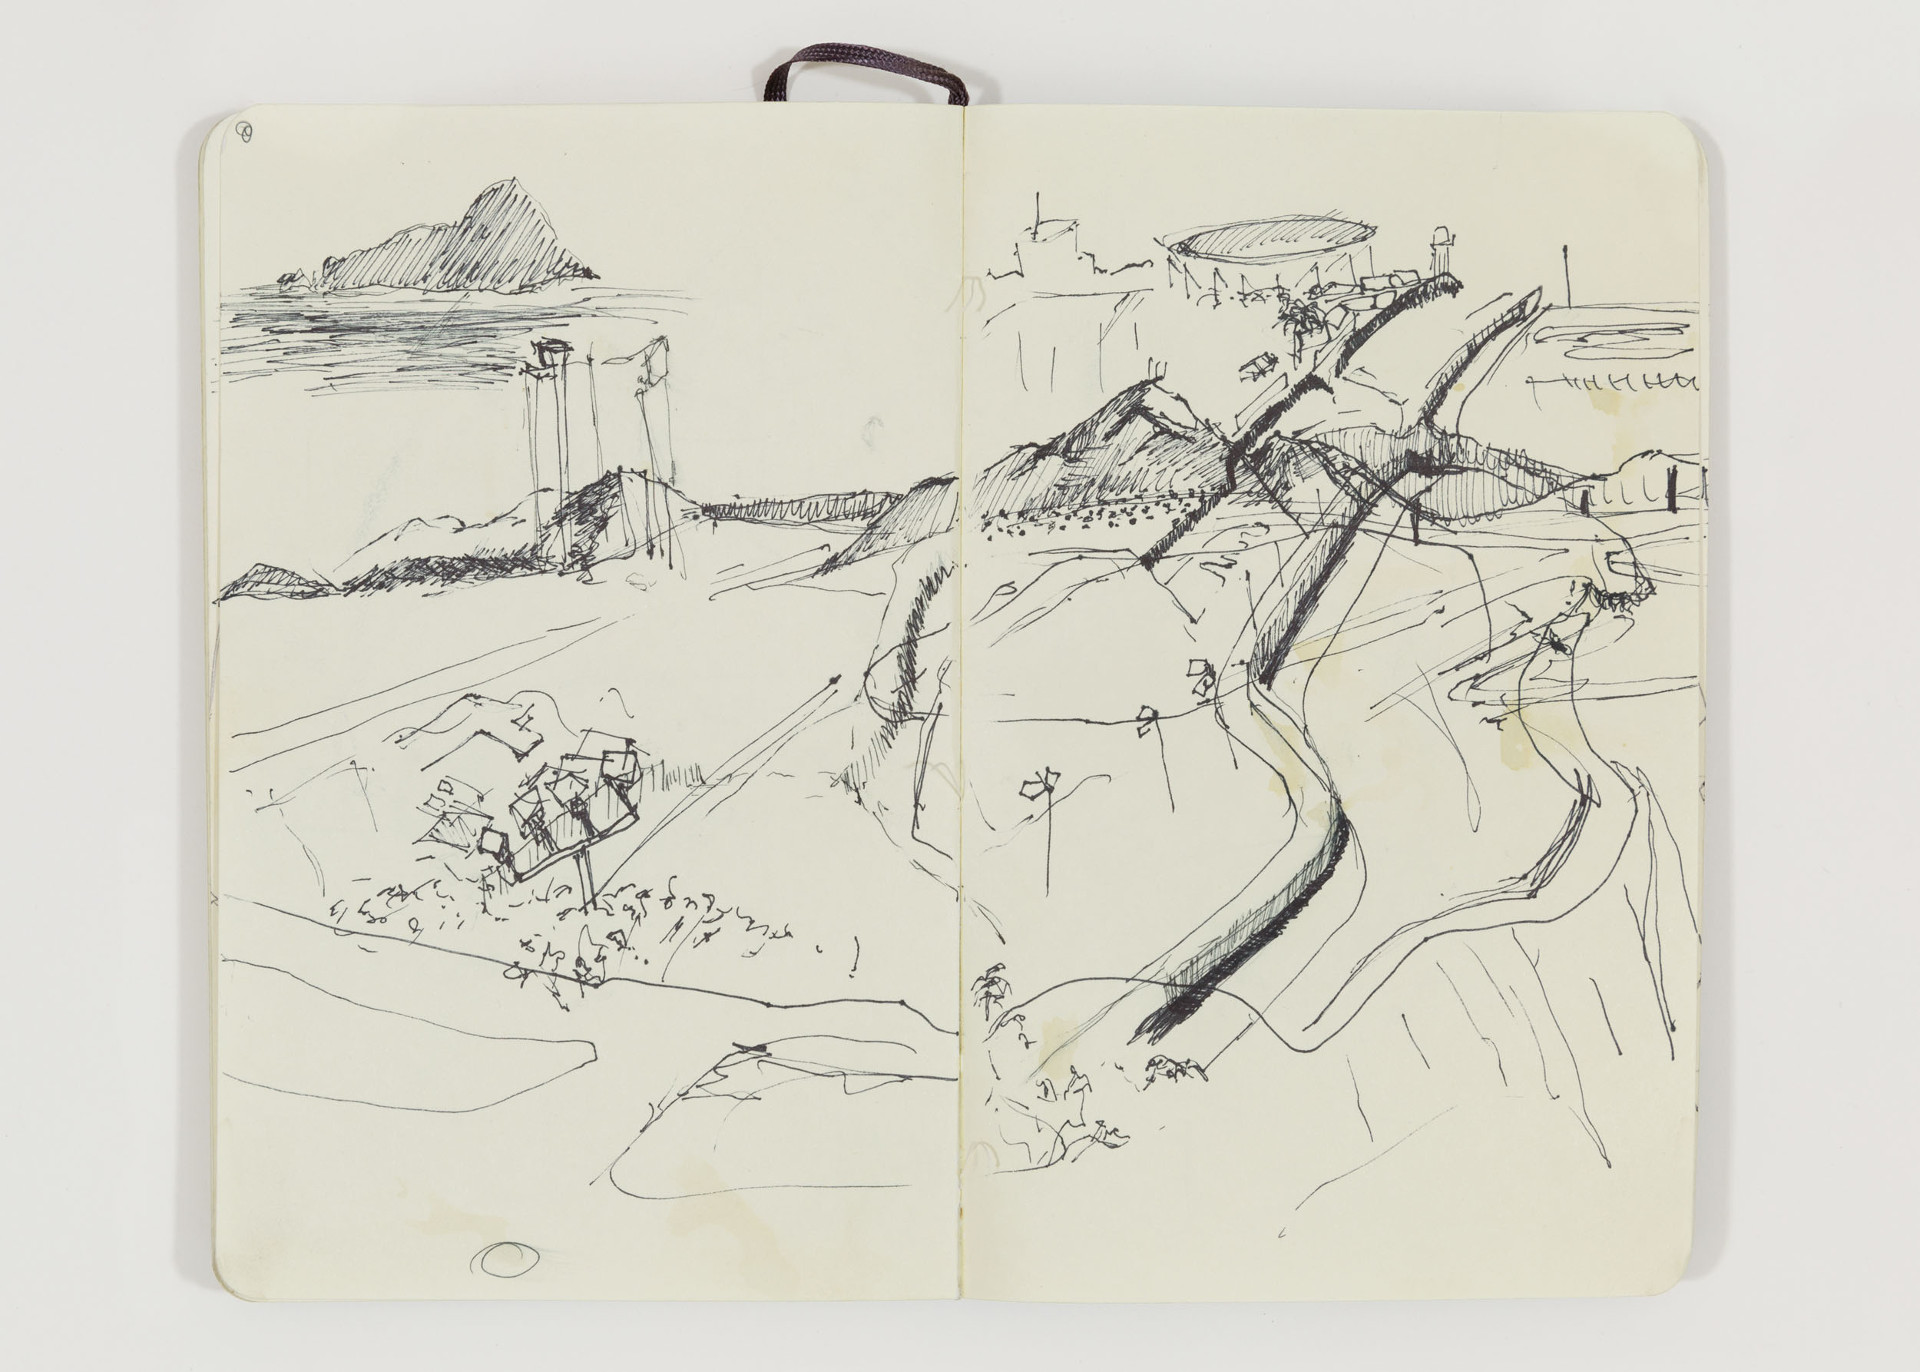 """Nichole Speciale, """"View from Bunk Hill Looking West,"""" U.S.-Mexico Border, Border Field State Park, San Diego, CA, 2014. Ink on paper in sketchbook."""